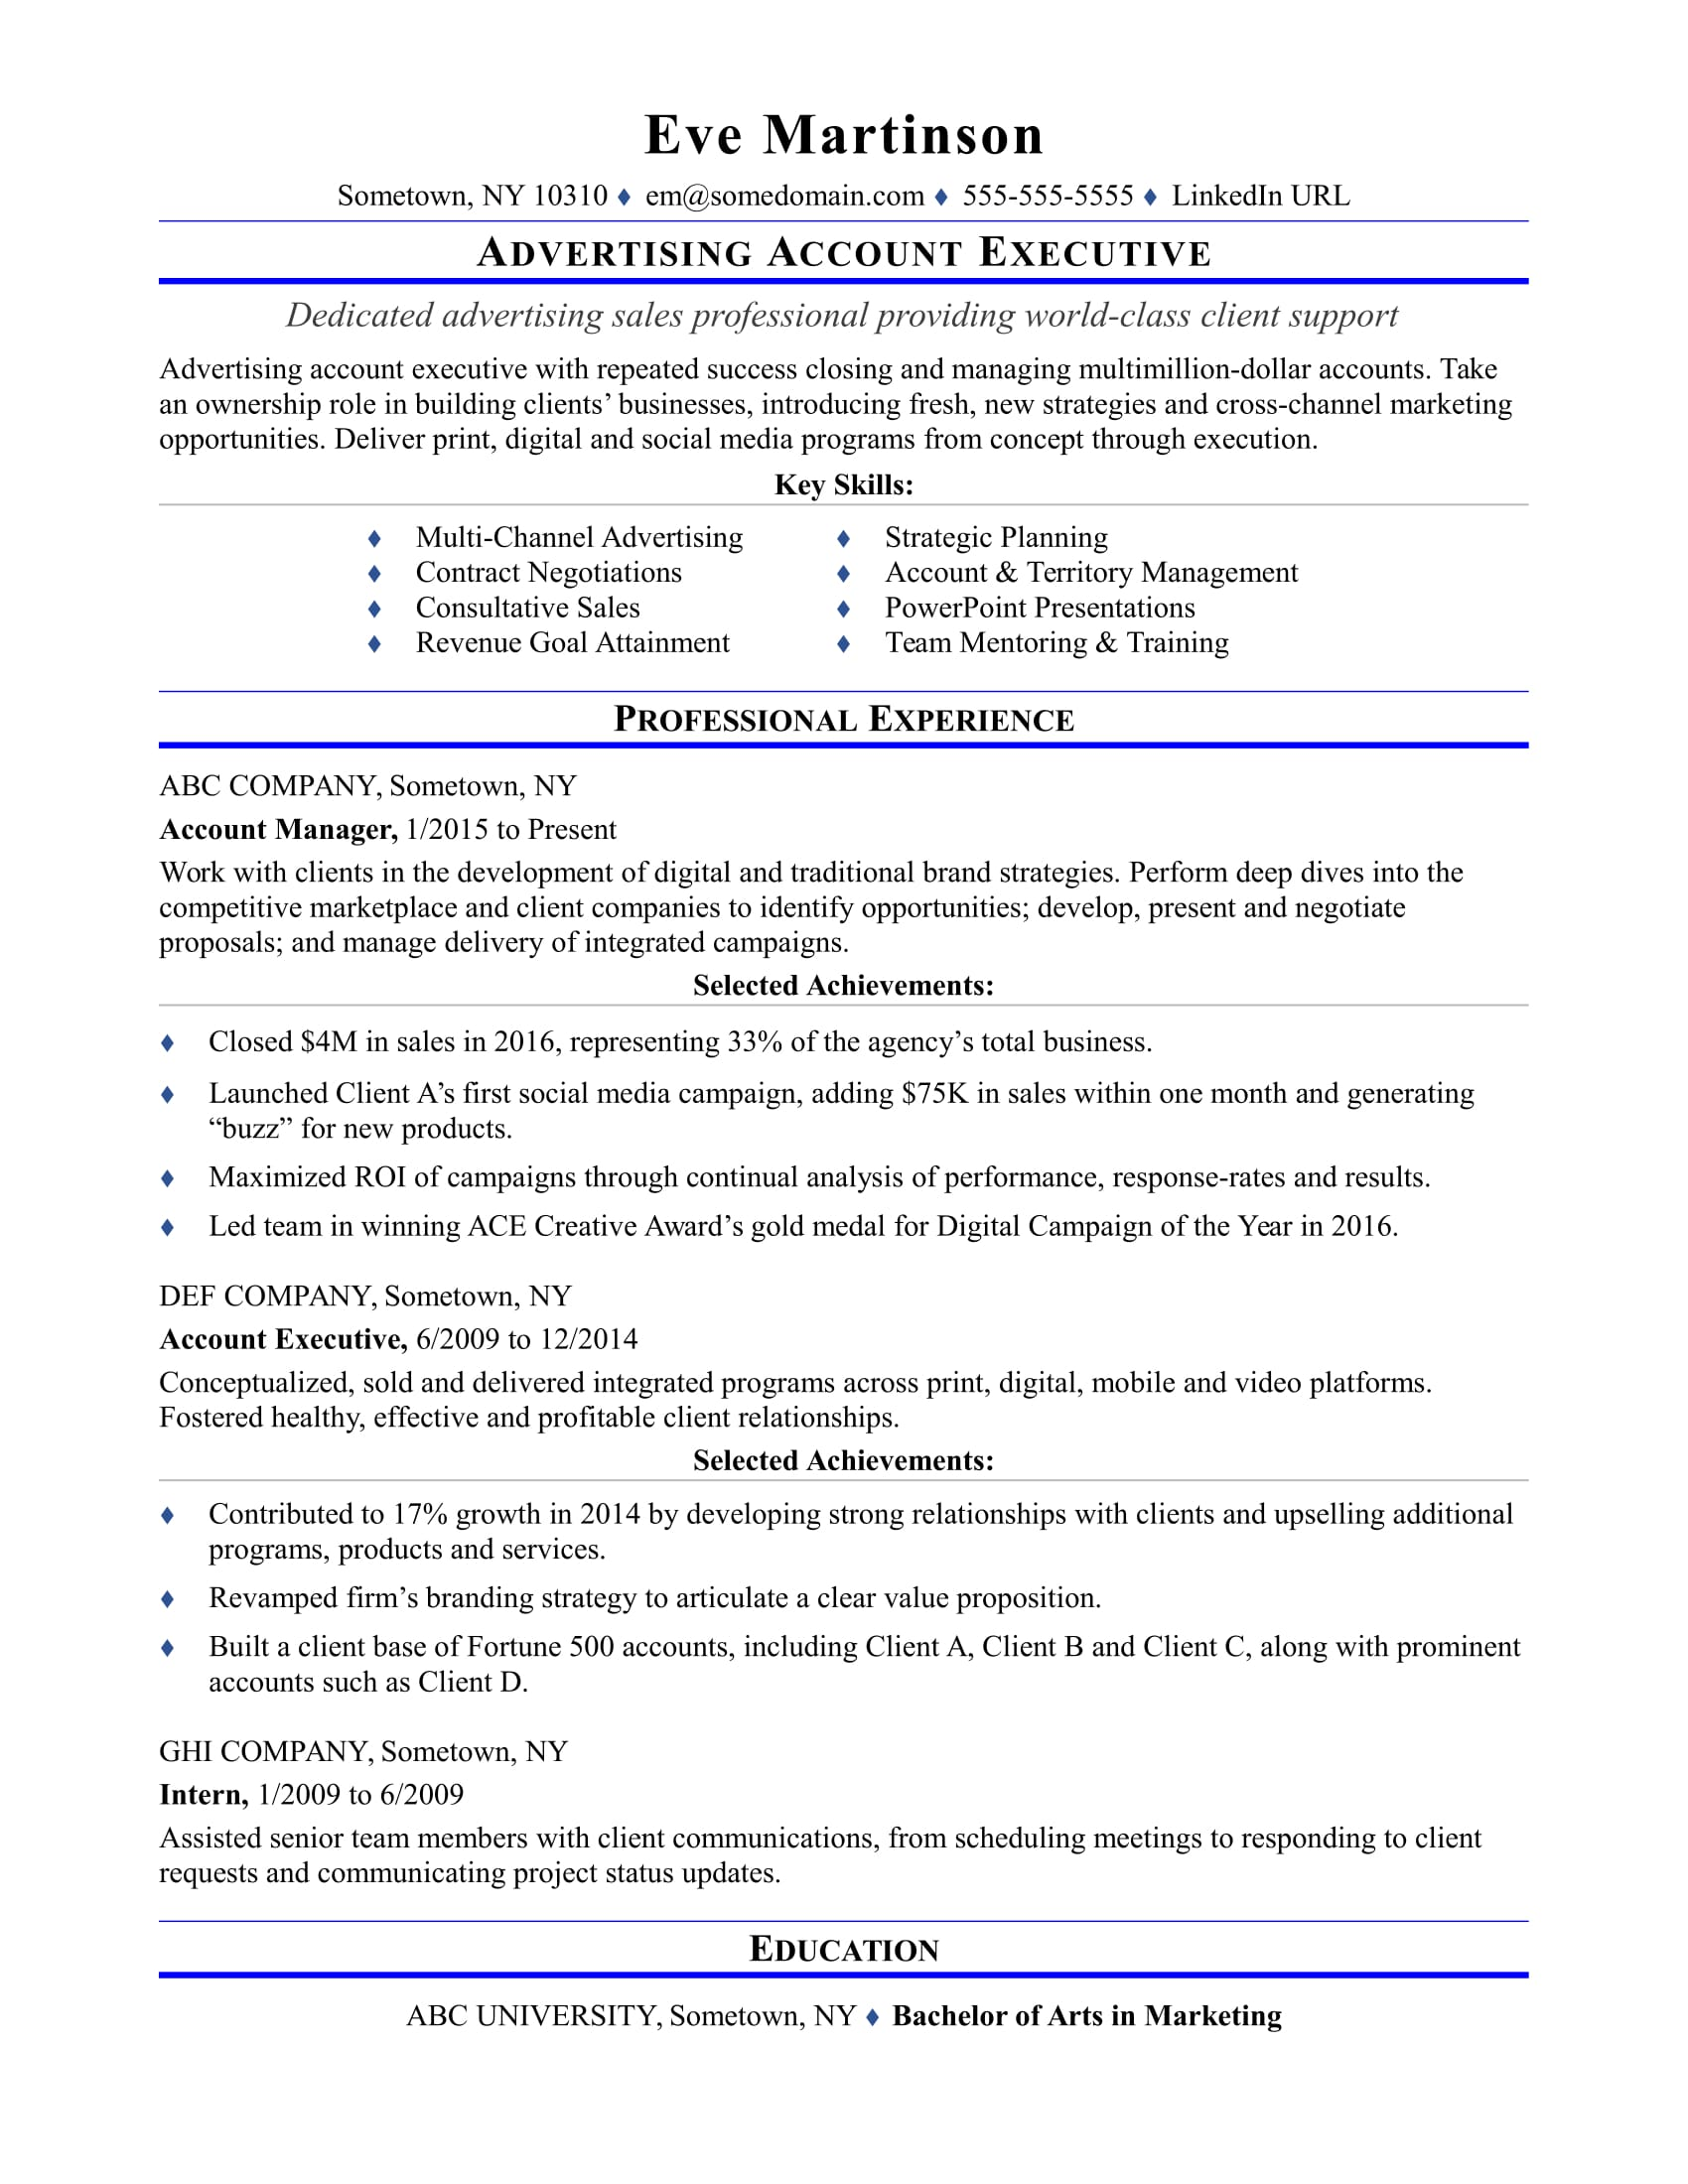 sample resume for an advertising account executive monster com